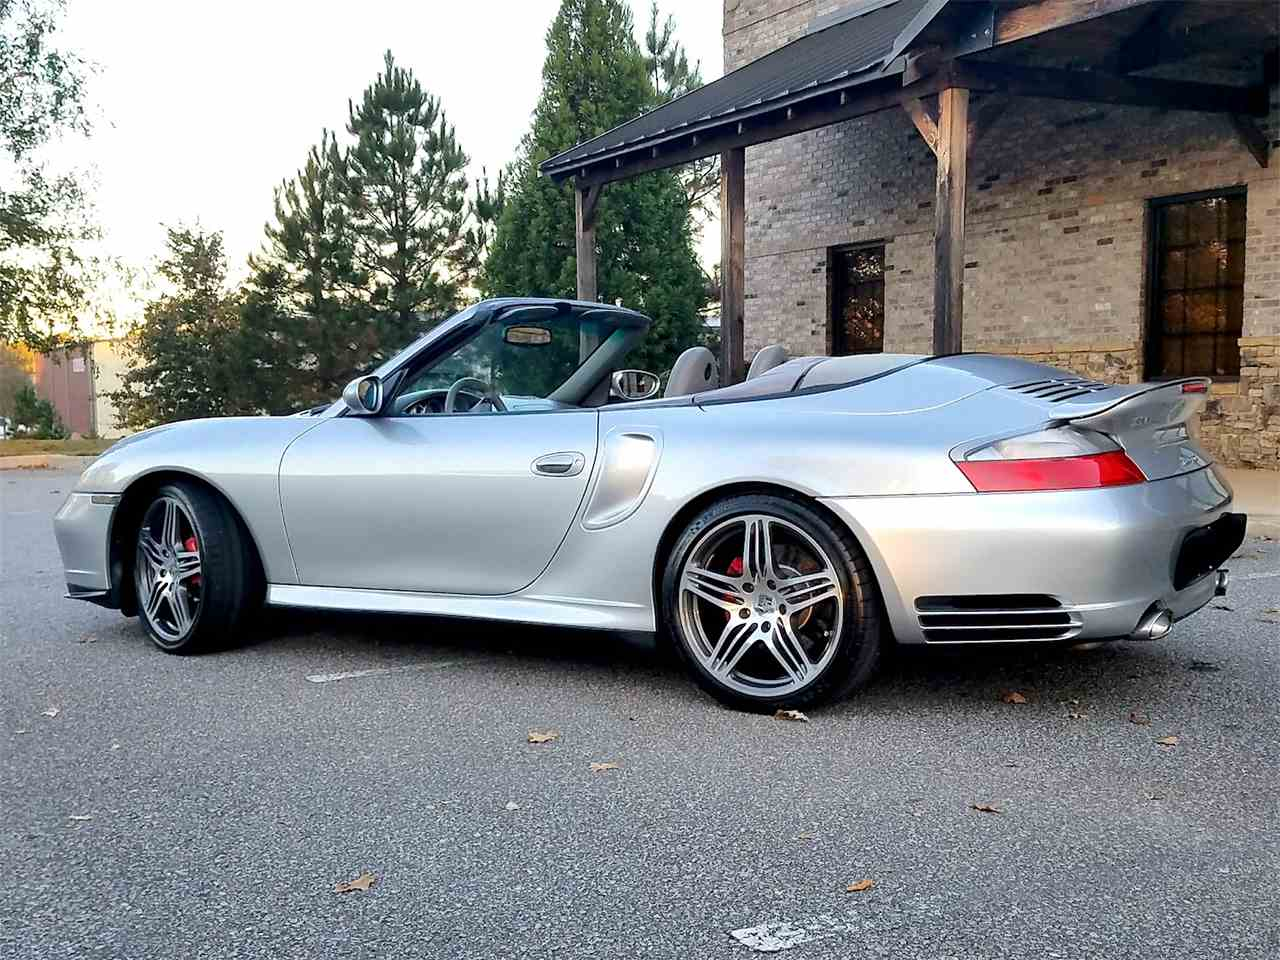 Large Picture of '04 911 Carrera Turbo - $55,000.00 - MCDK